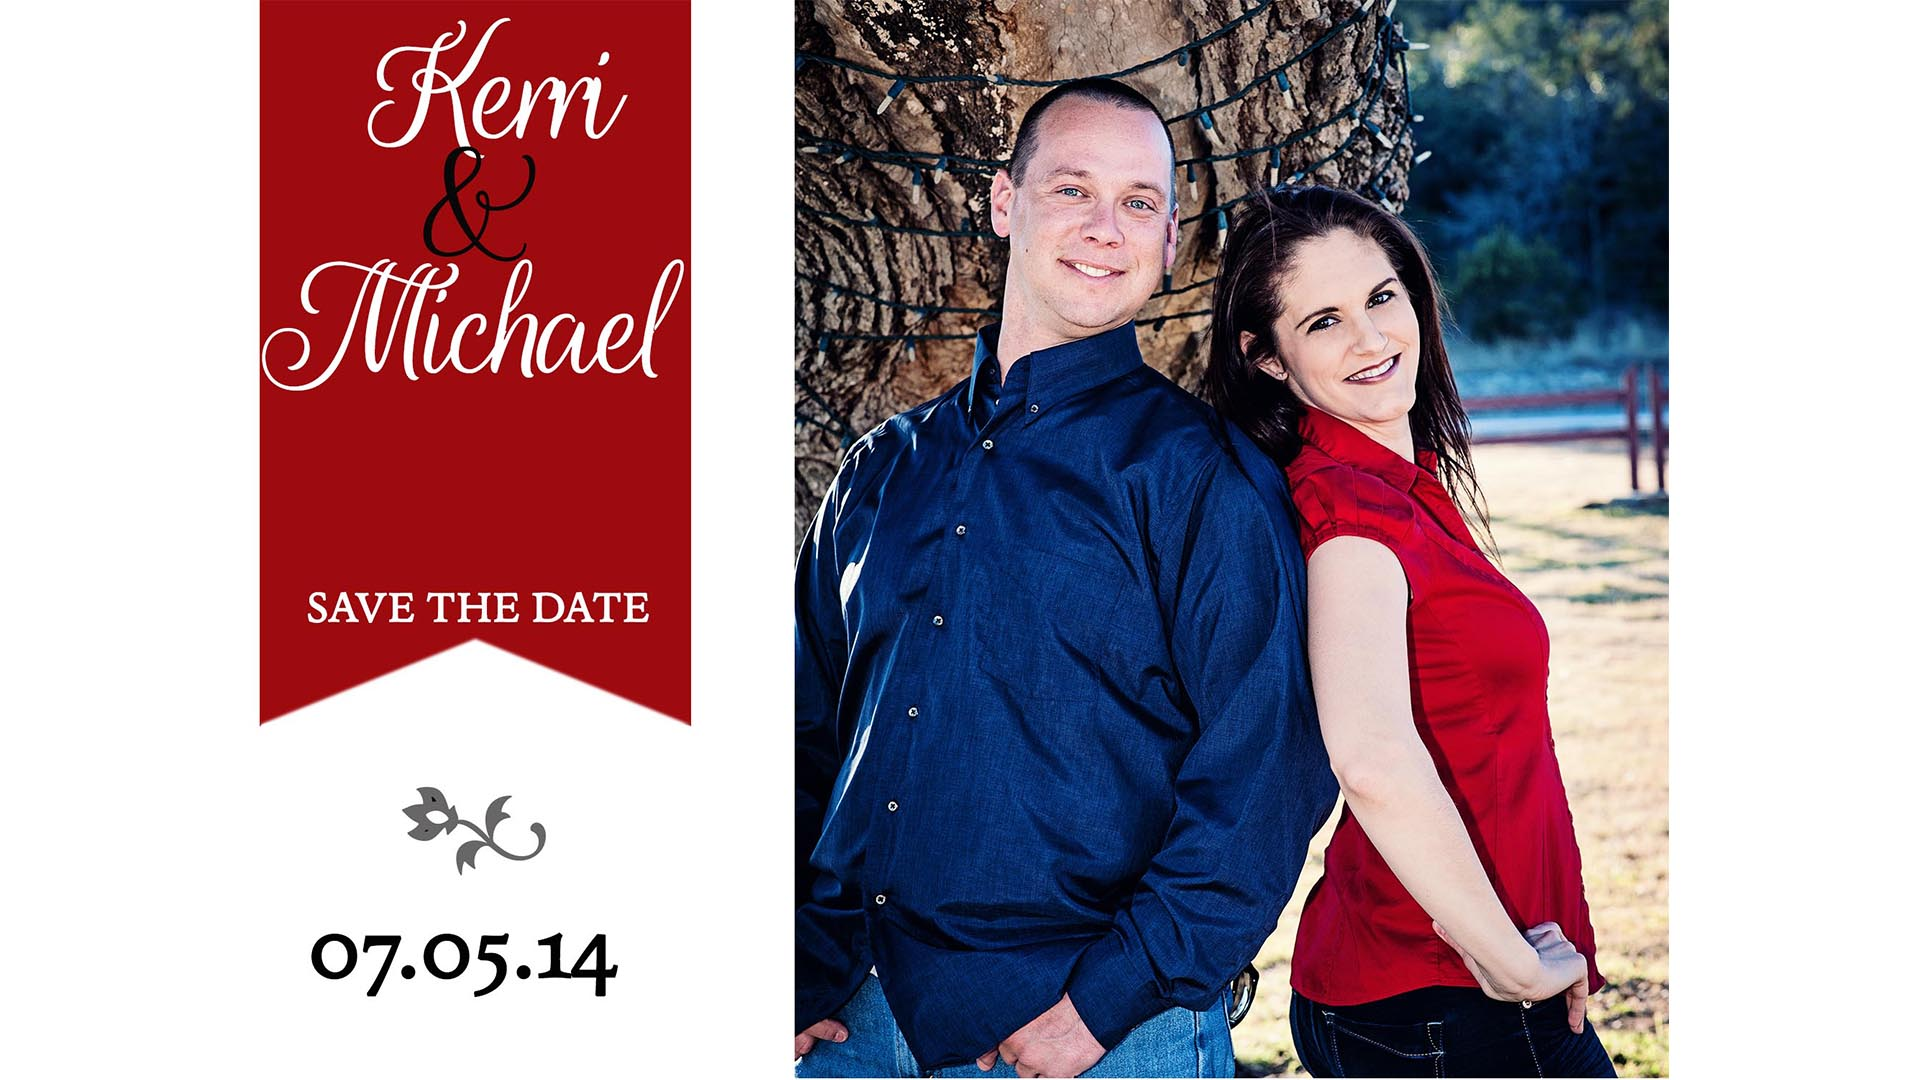 San Antonio Wedding Photographer Save the Date